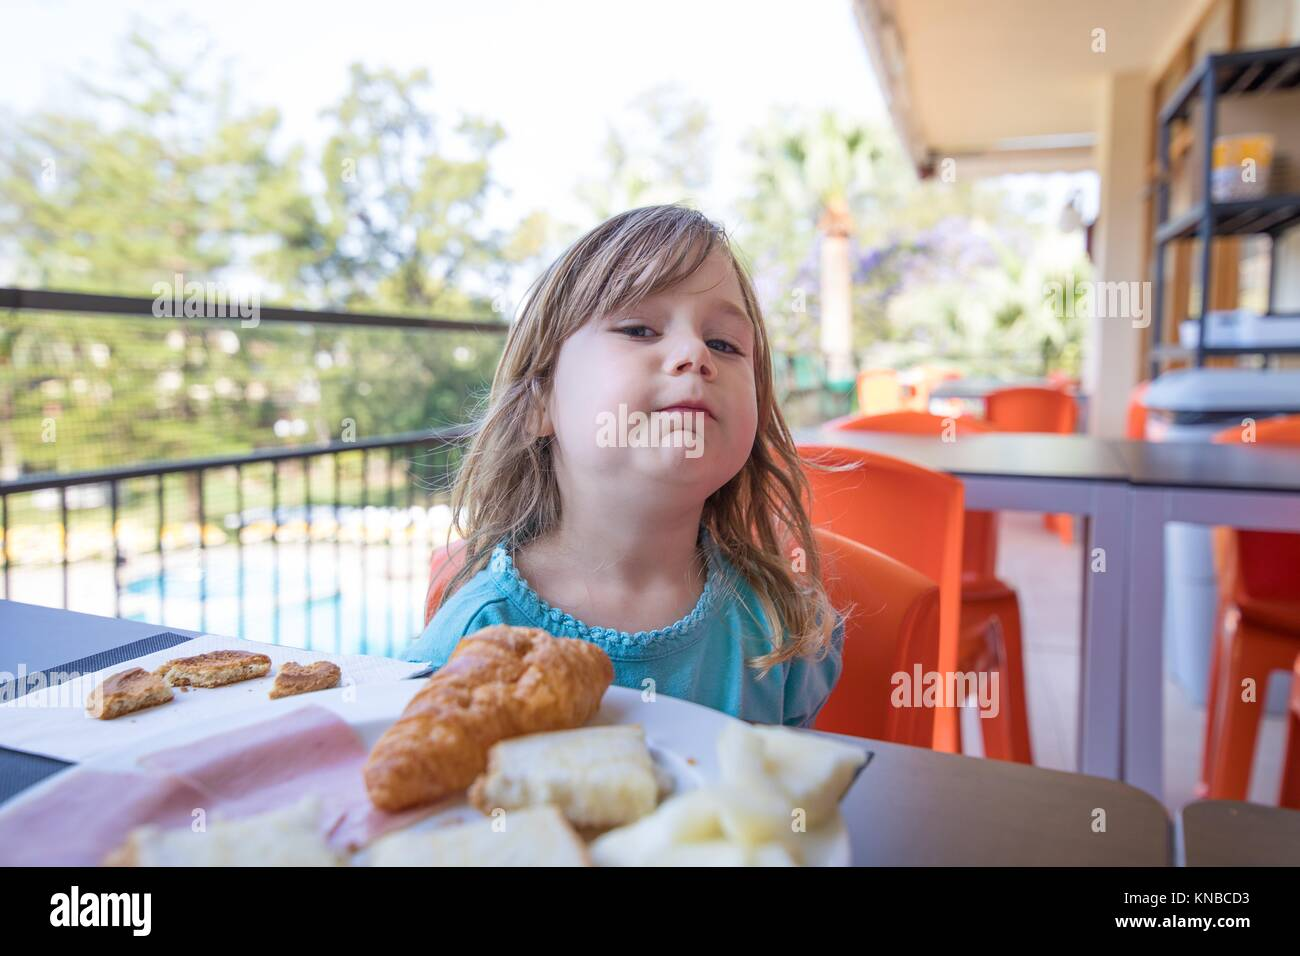 portrait of blonde caucasian child three years old with blue shirt, at breakfast, looking with challenging funny - Stock Image